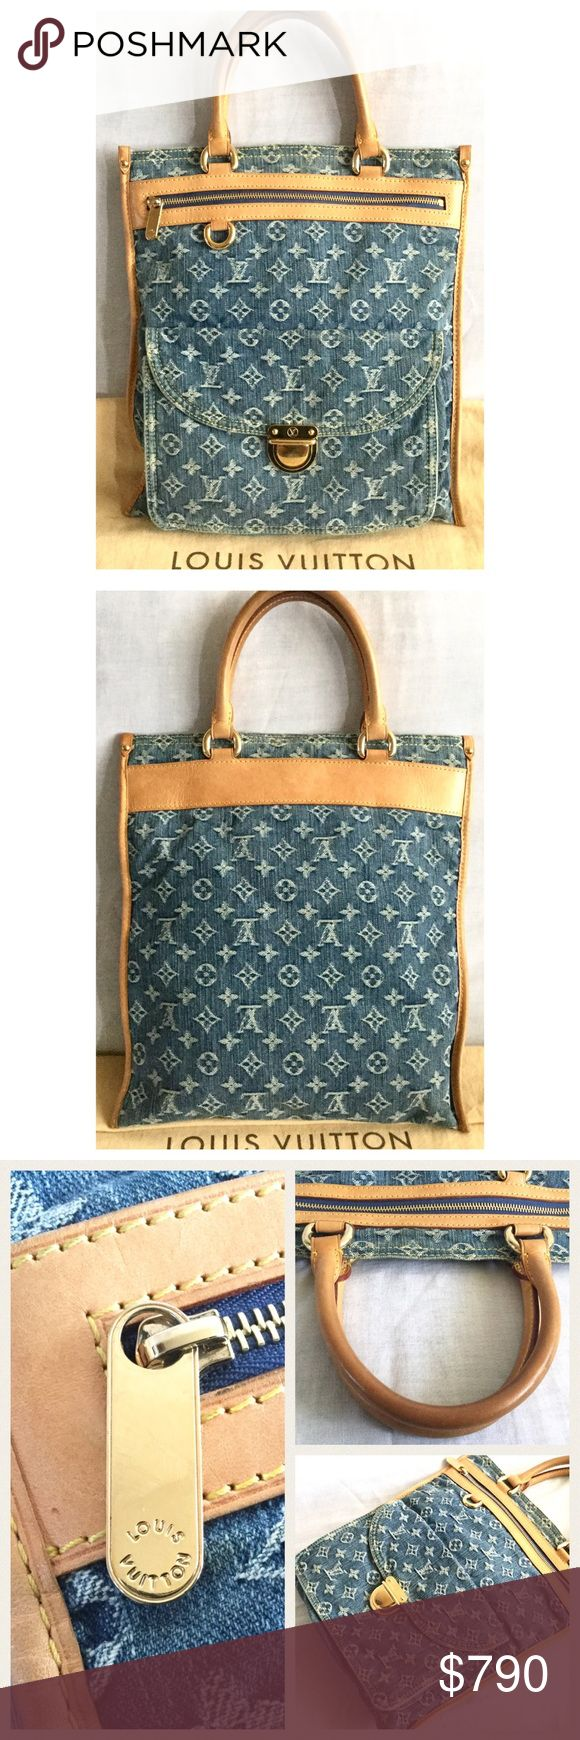 """Louis Vuitton Denim Sac Plat Authentic Louis Vuitton Denim Sac Plat.  14 H x 13"""" W x 3"""" D and 5"""" drop on the dual rolled leather handles.  Open top, zip pocket, flap pocket with push lock, mustard yellow Alcantara lining, interior slot pocket.  In good condition for its age.  The lining has a few very small pen marks. The interior pocket has more ink marks.  Hard to read but I think date code is AS0075 (July 2005).  Includes dust bag, booklet and cards.  No trades. Louis Vuitton Bags"""